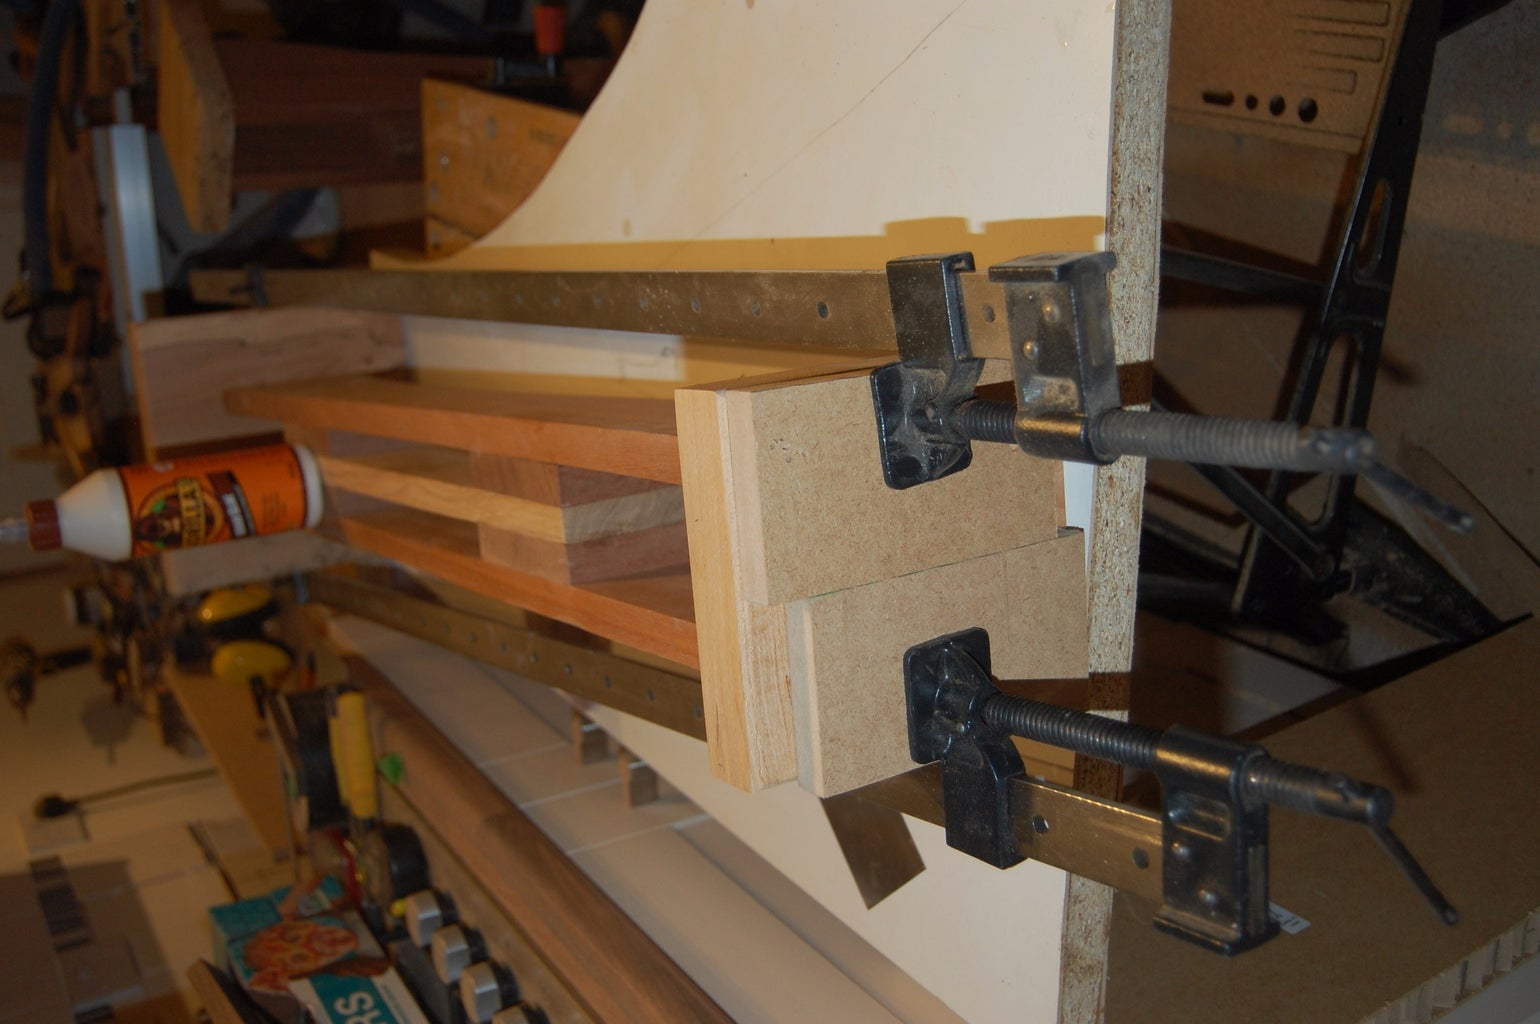 Clamping and Finishing